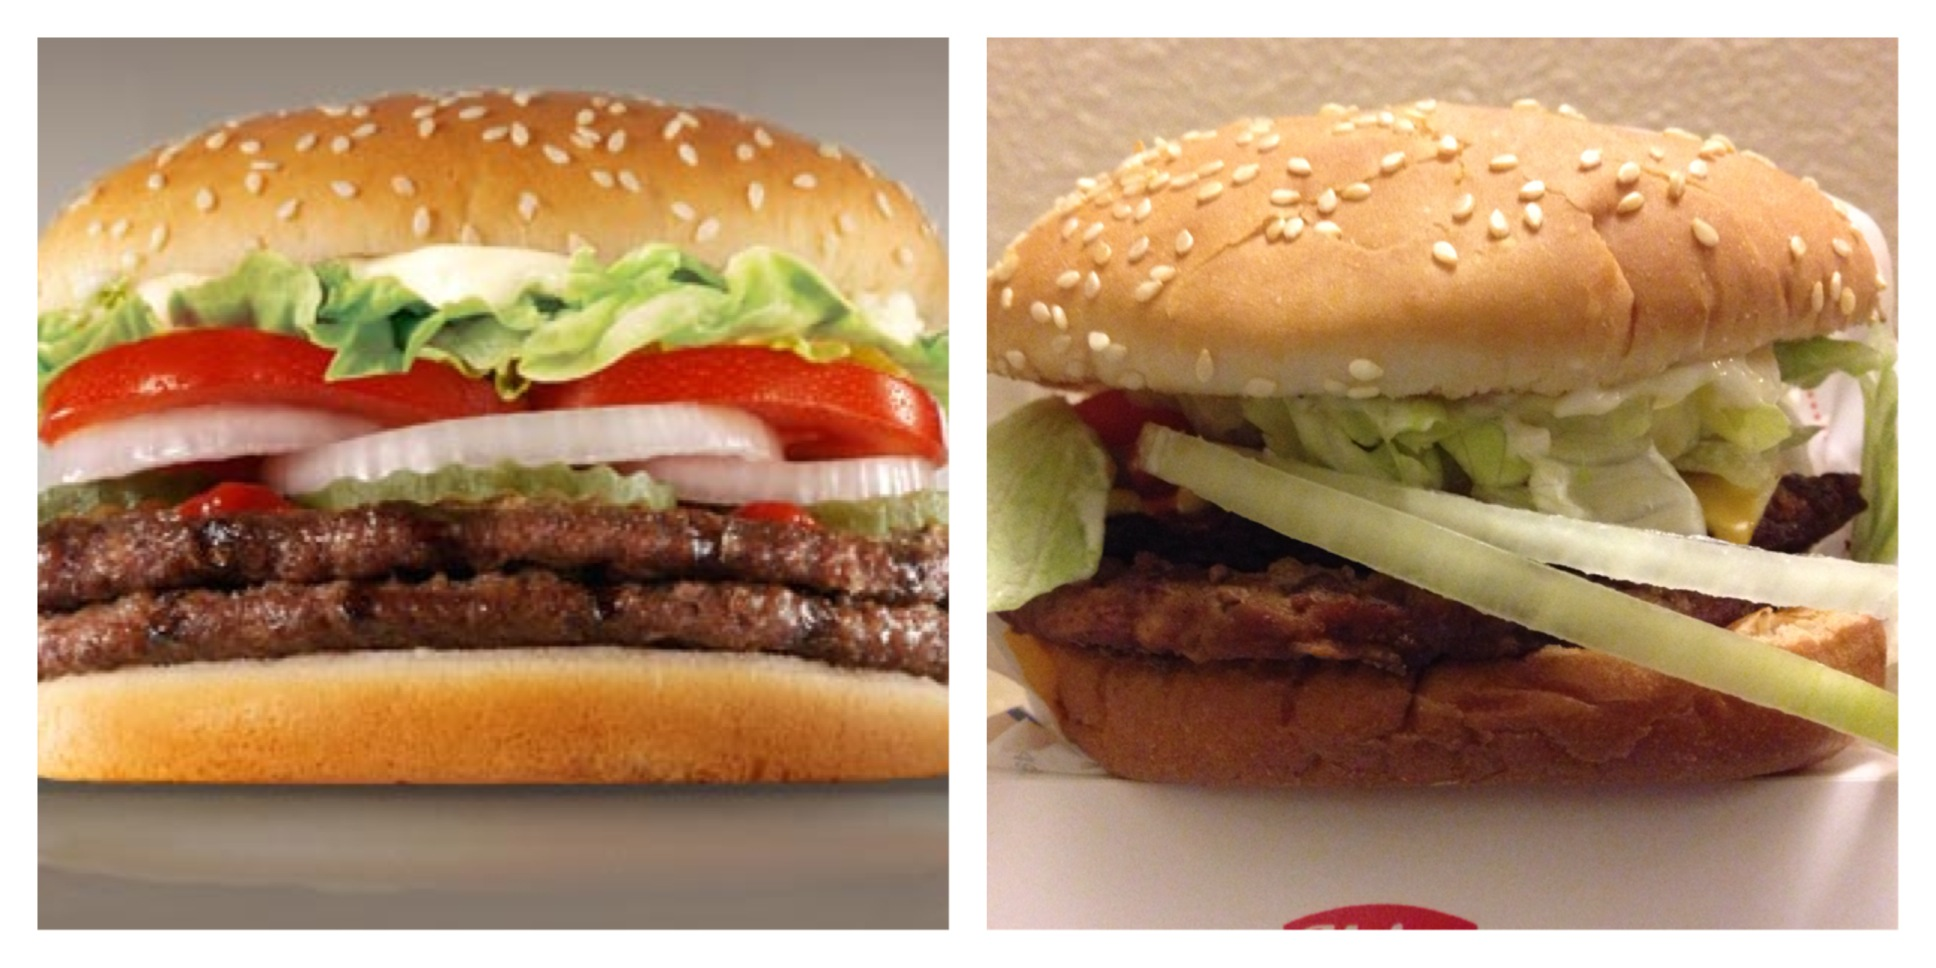 The Double Whopper With Cheese From Burger King